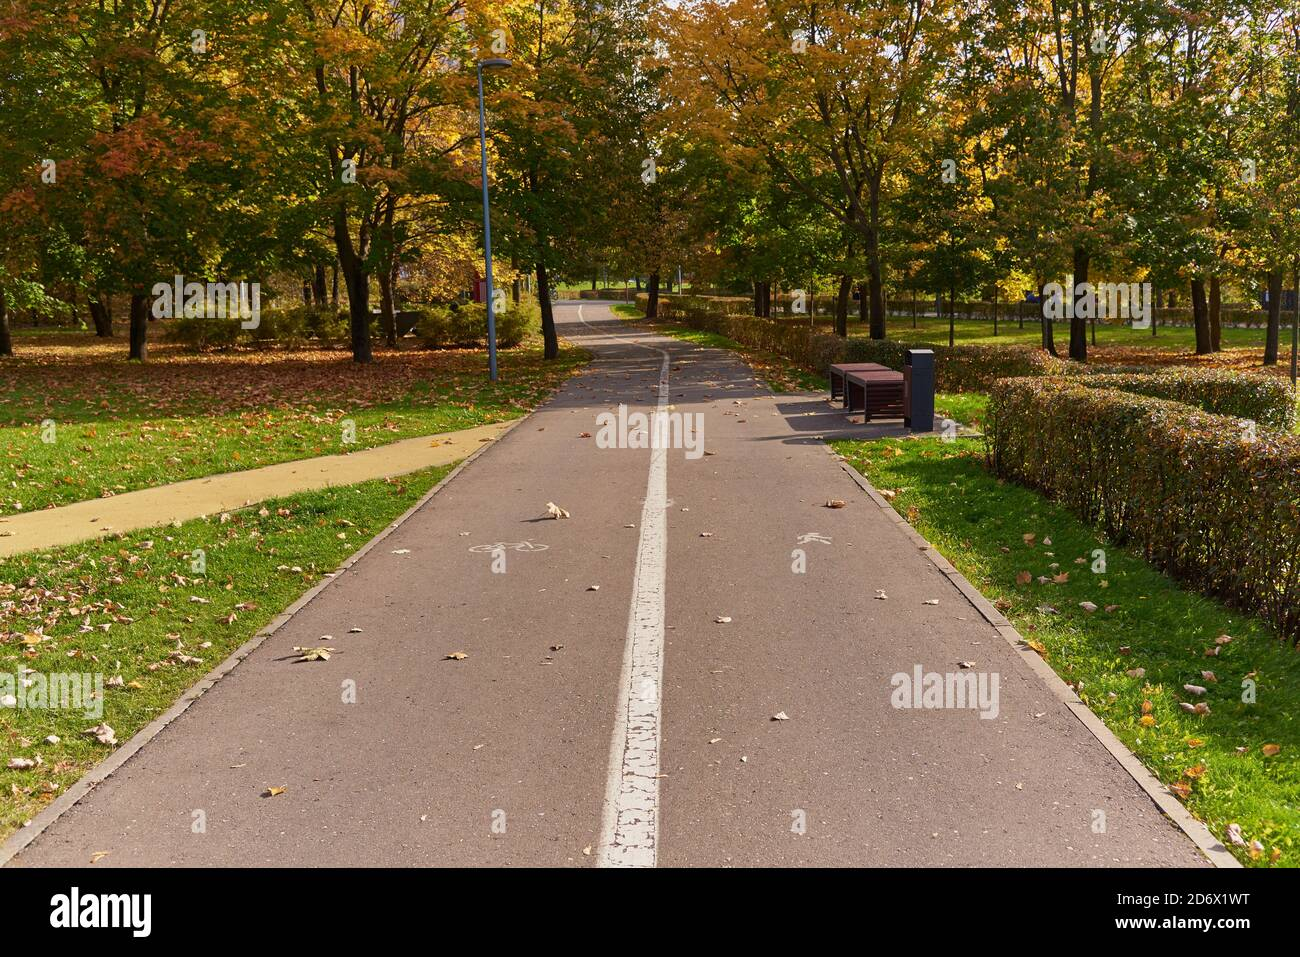 Paved road in the Park,divided by markings on the Bicycle and pedestrian parts. Stock Photo